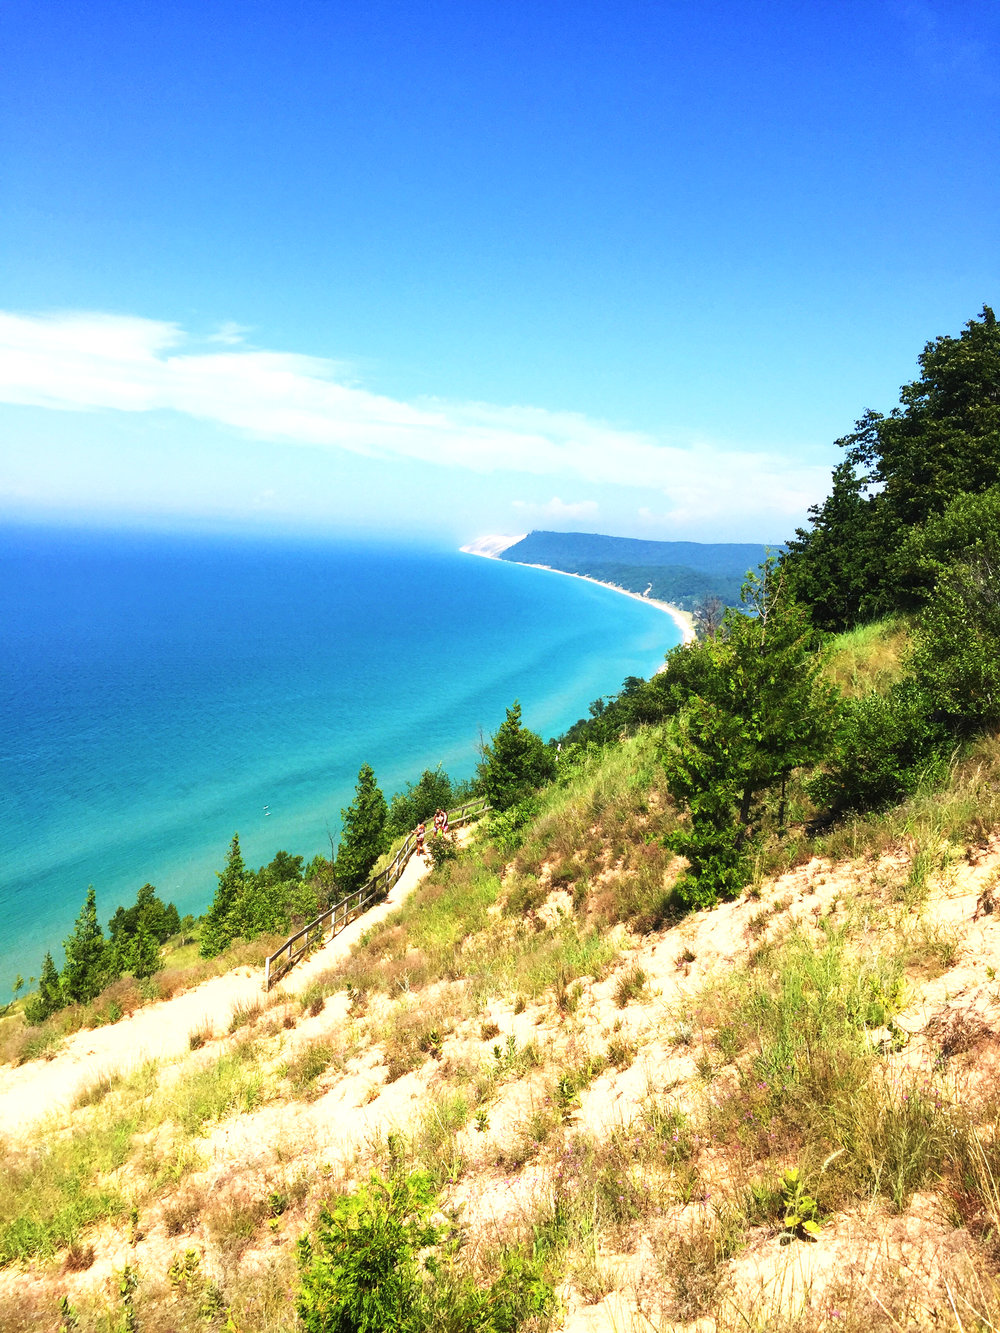 Sleeping Bear Dunes Overlook - Traverse City, MI.jpg